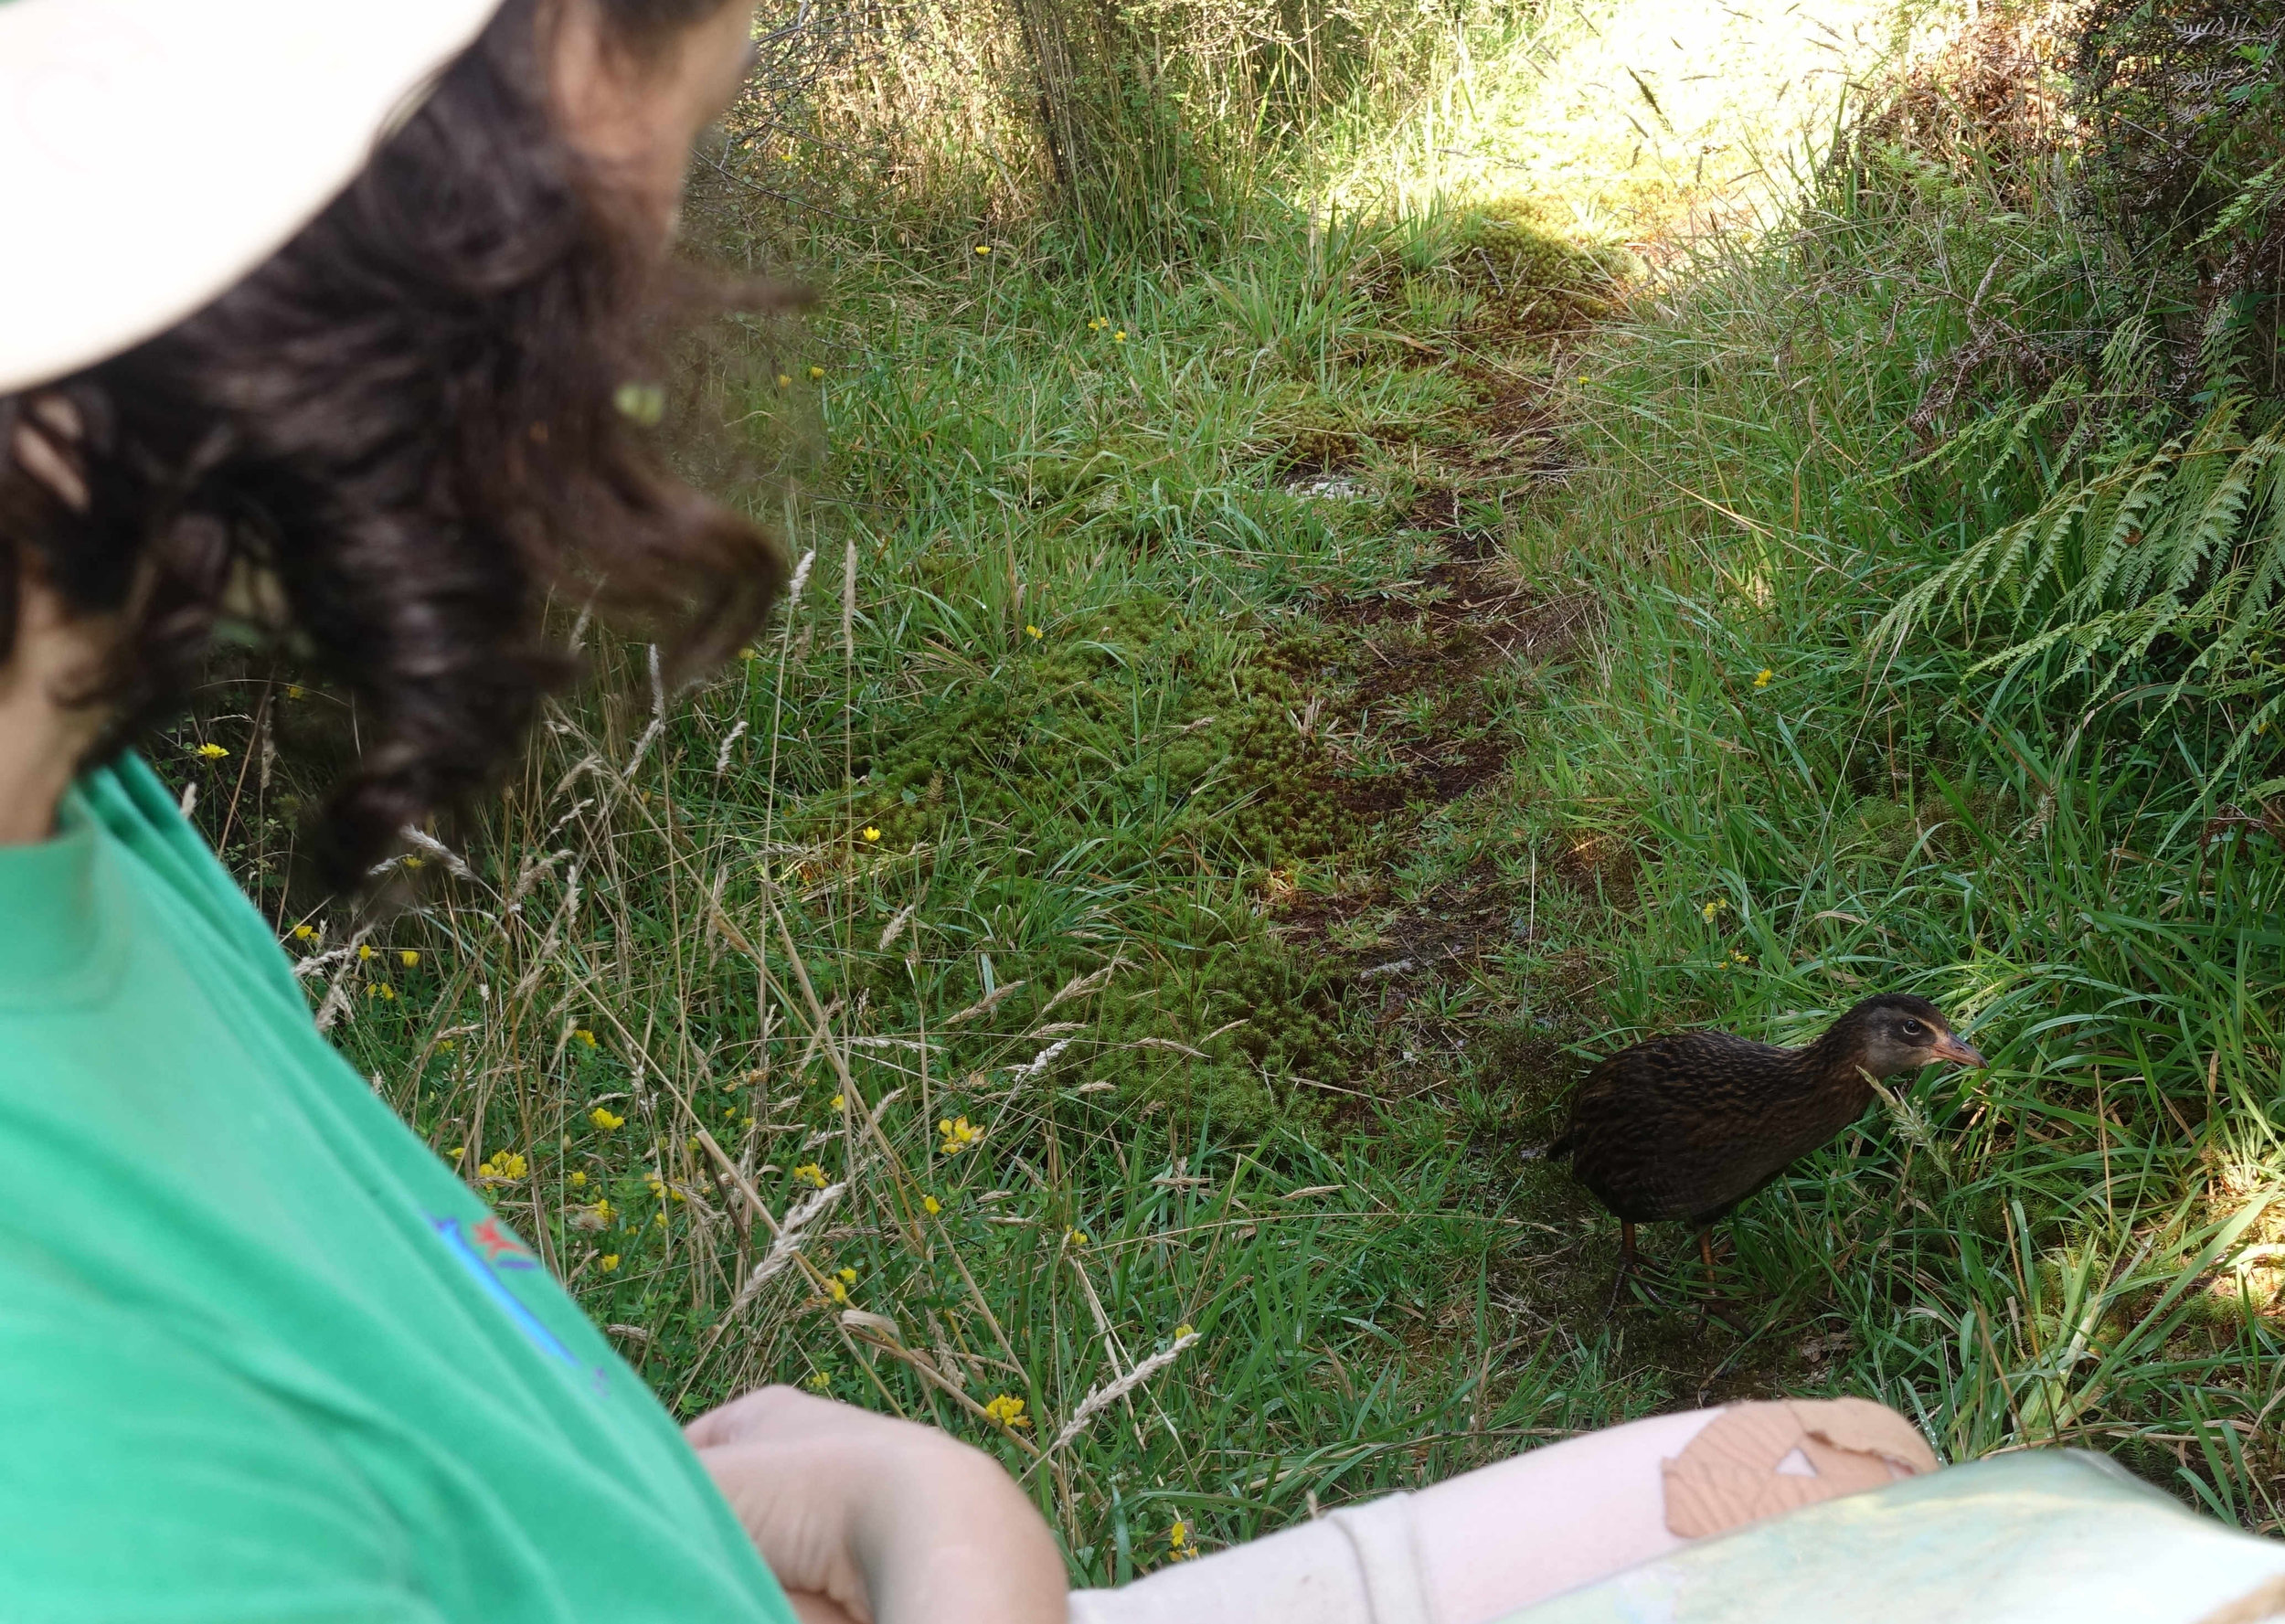 Weka visitor during a rest break